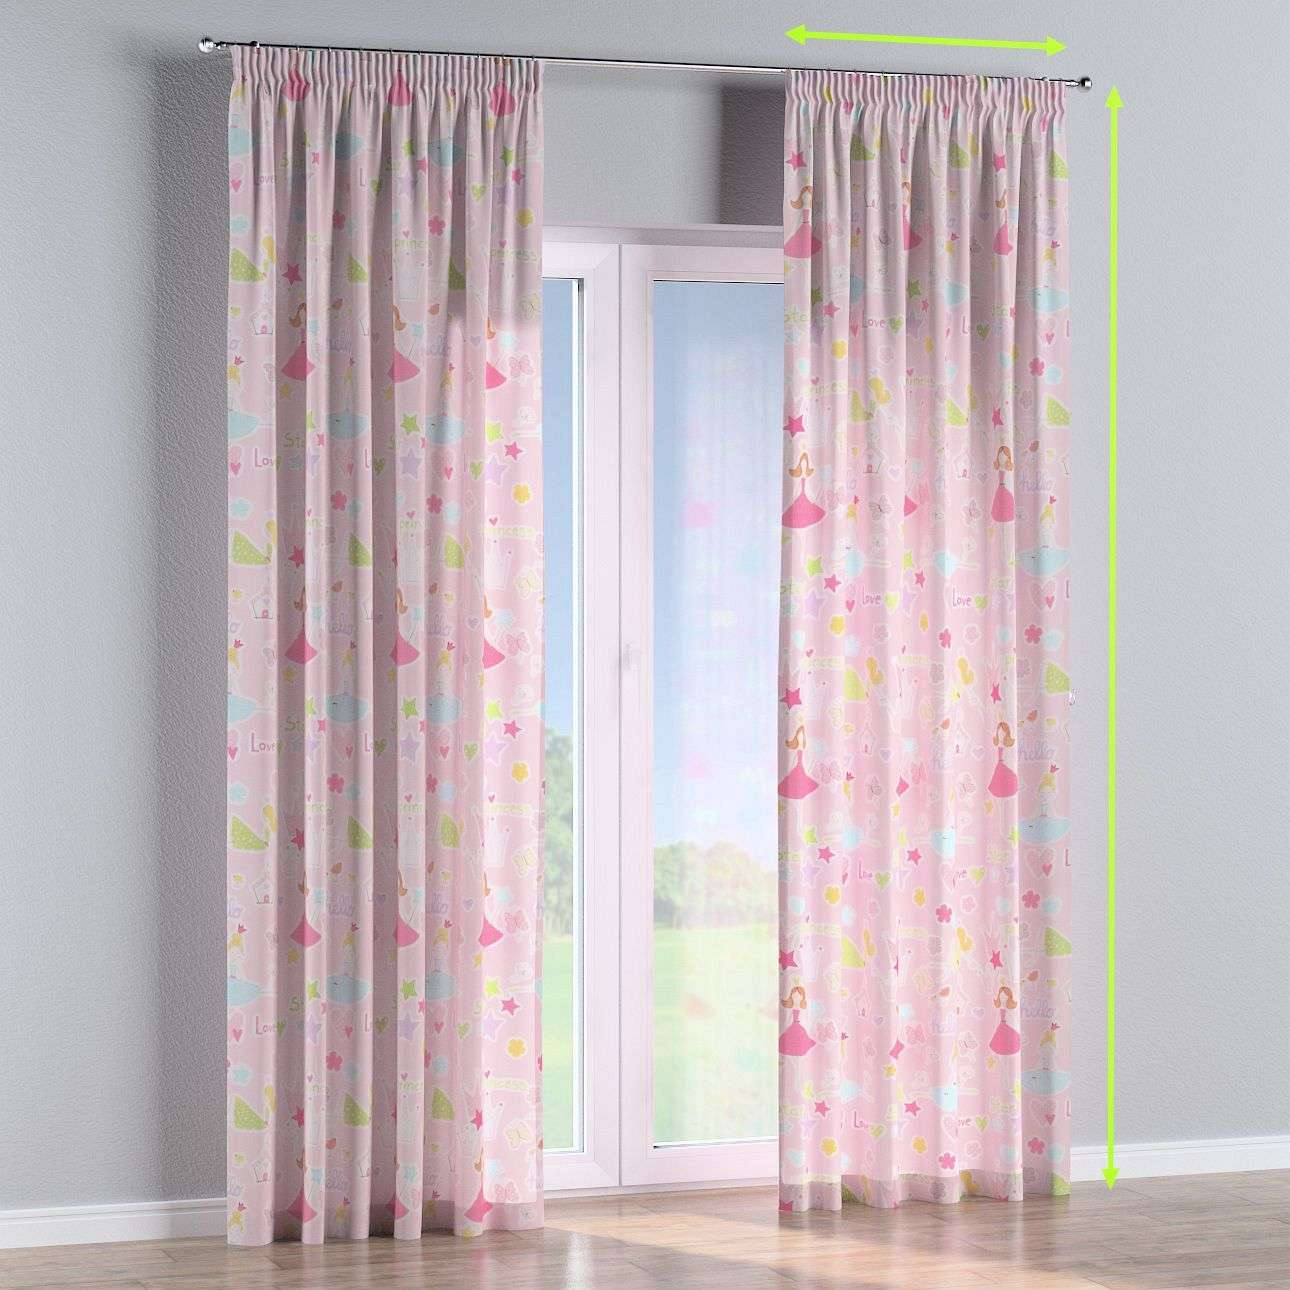 Pencil pleat lined curtains in collection Little World, fabric: 141-50